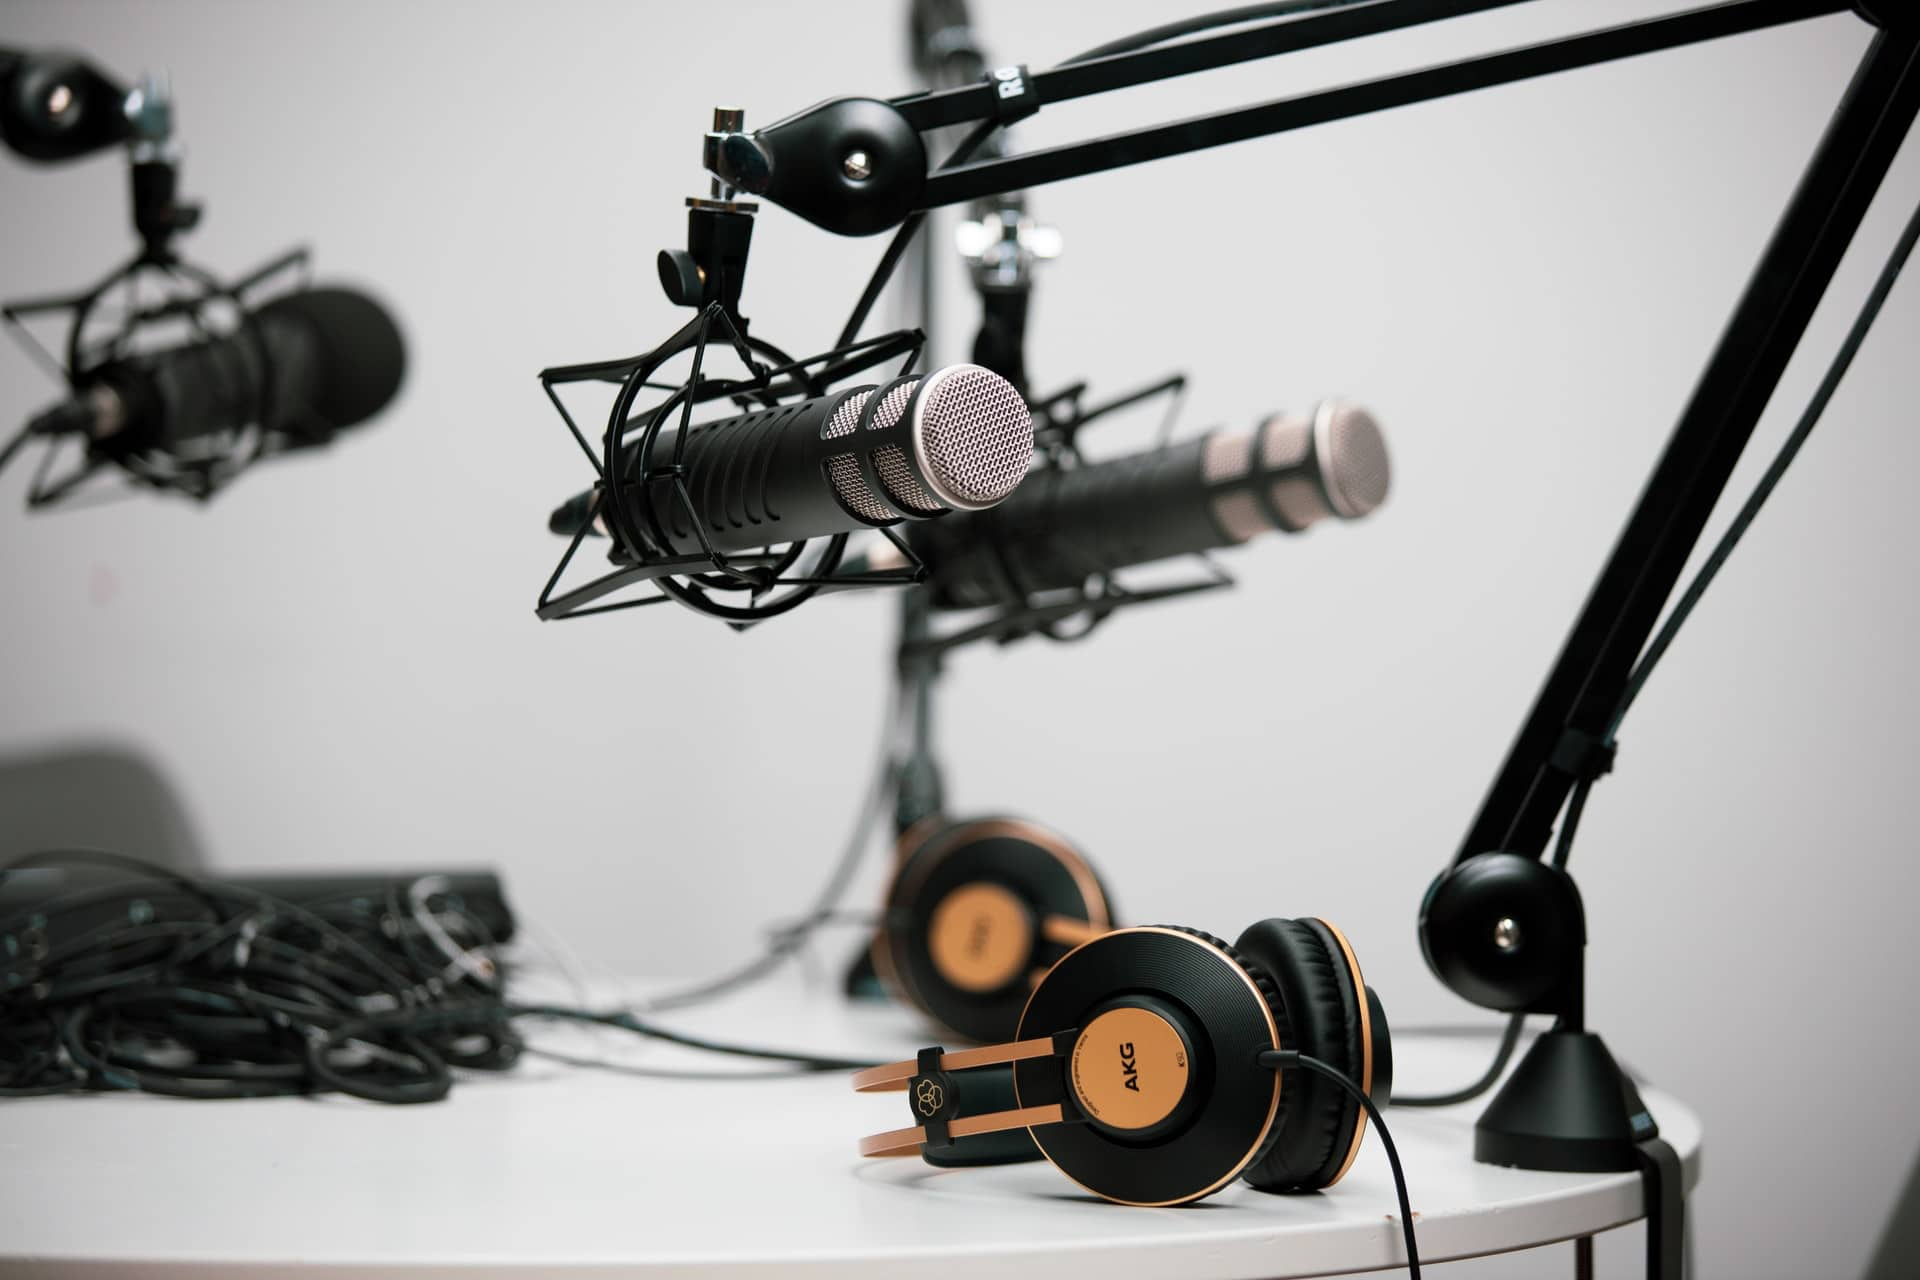 Black Podcast microphone on a scissor arm clamped to a white table